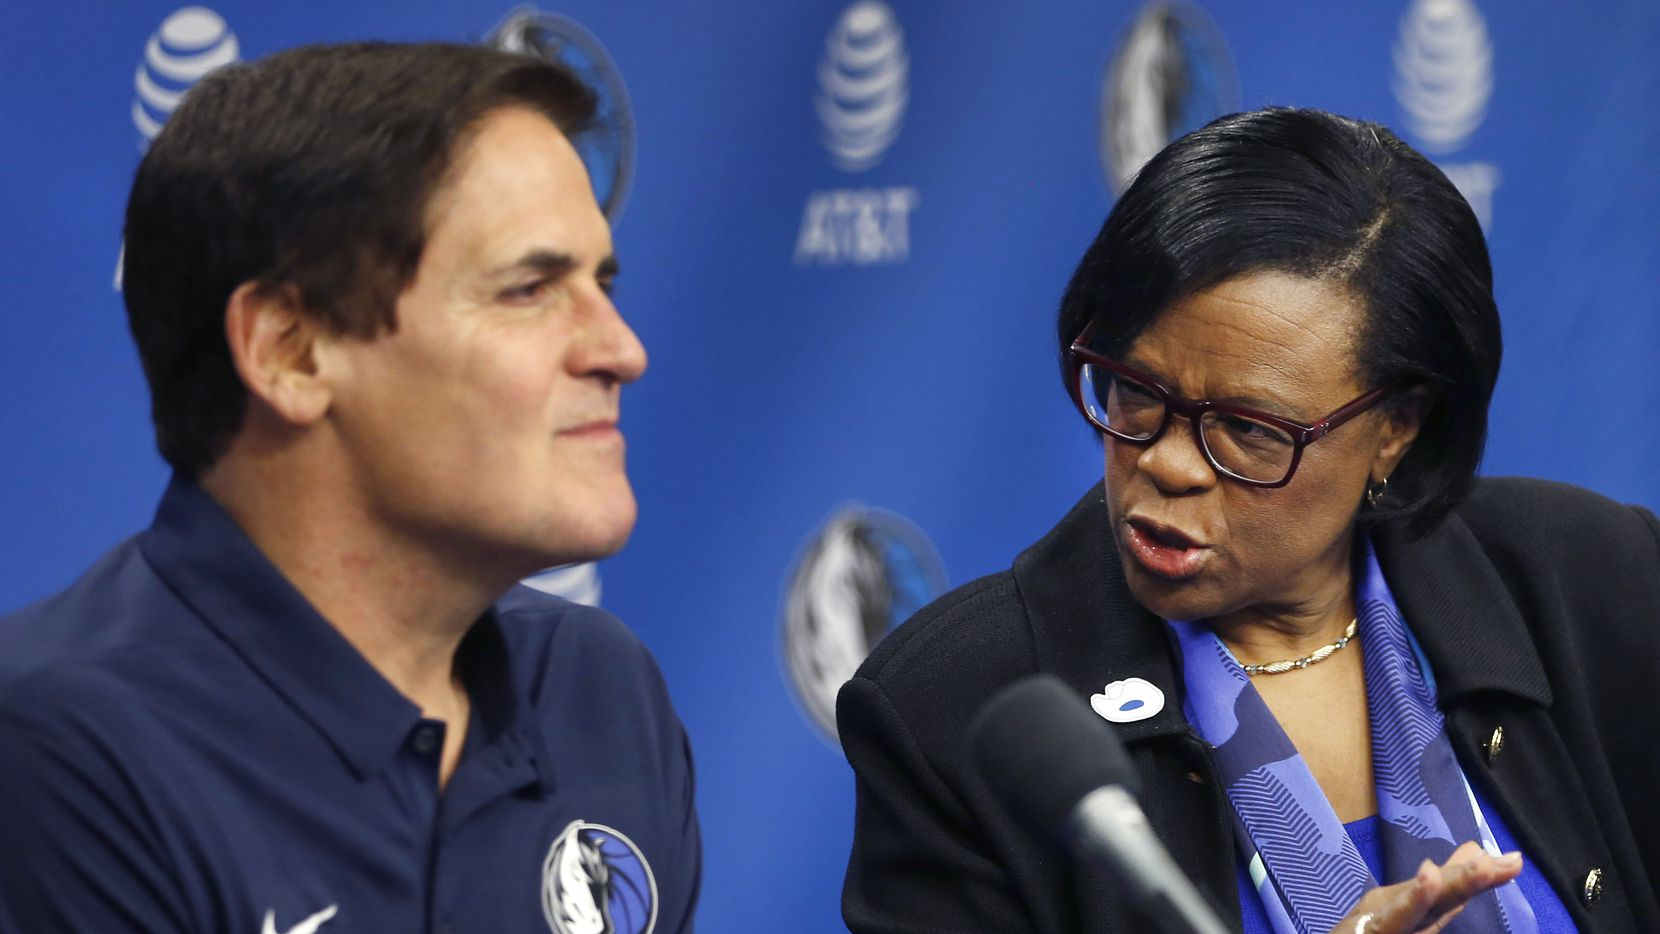 February 26, 2018: Dallas Mavericks CEO Cynthia Marshall advises owner Mark Cuban on an answer during a press conference at American Airlines Center in Dallas. Marshall was hired by the Mavericks to help clean up the organization after a sexual harassment scandal in the front office.